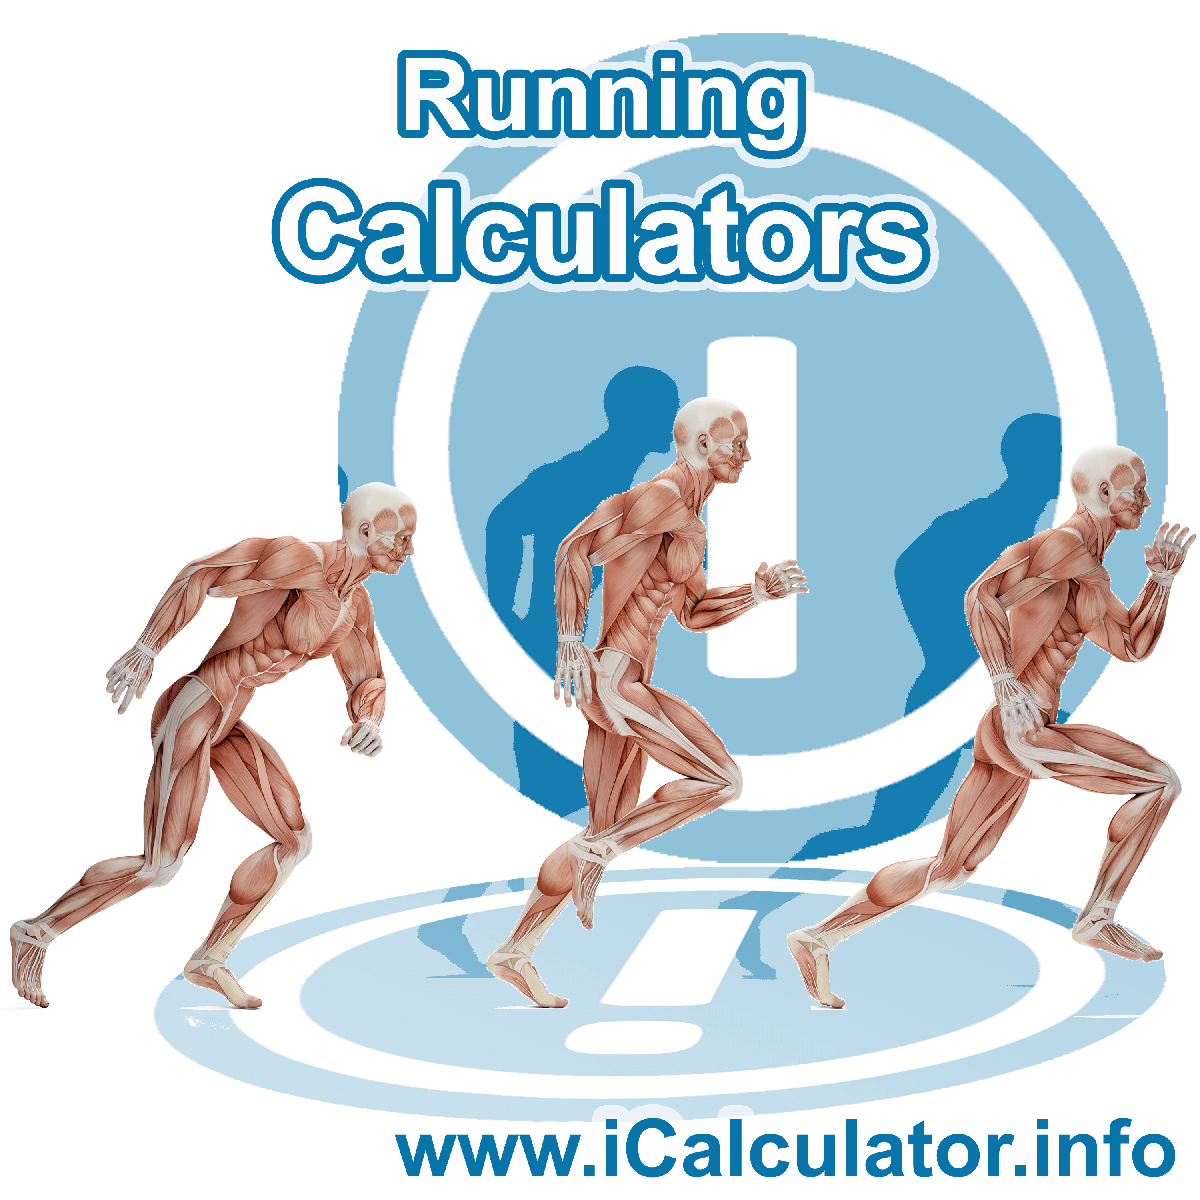 Running Calculator. This image shows an Running player playing running - by iCalculator